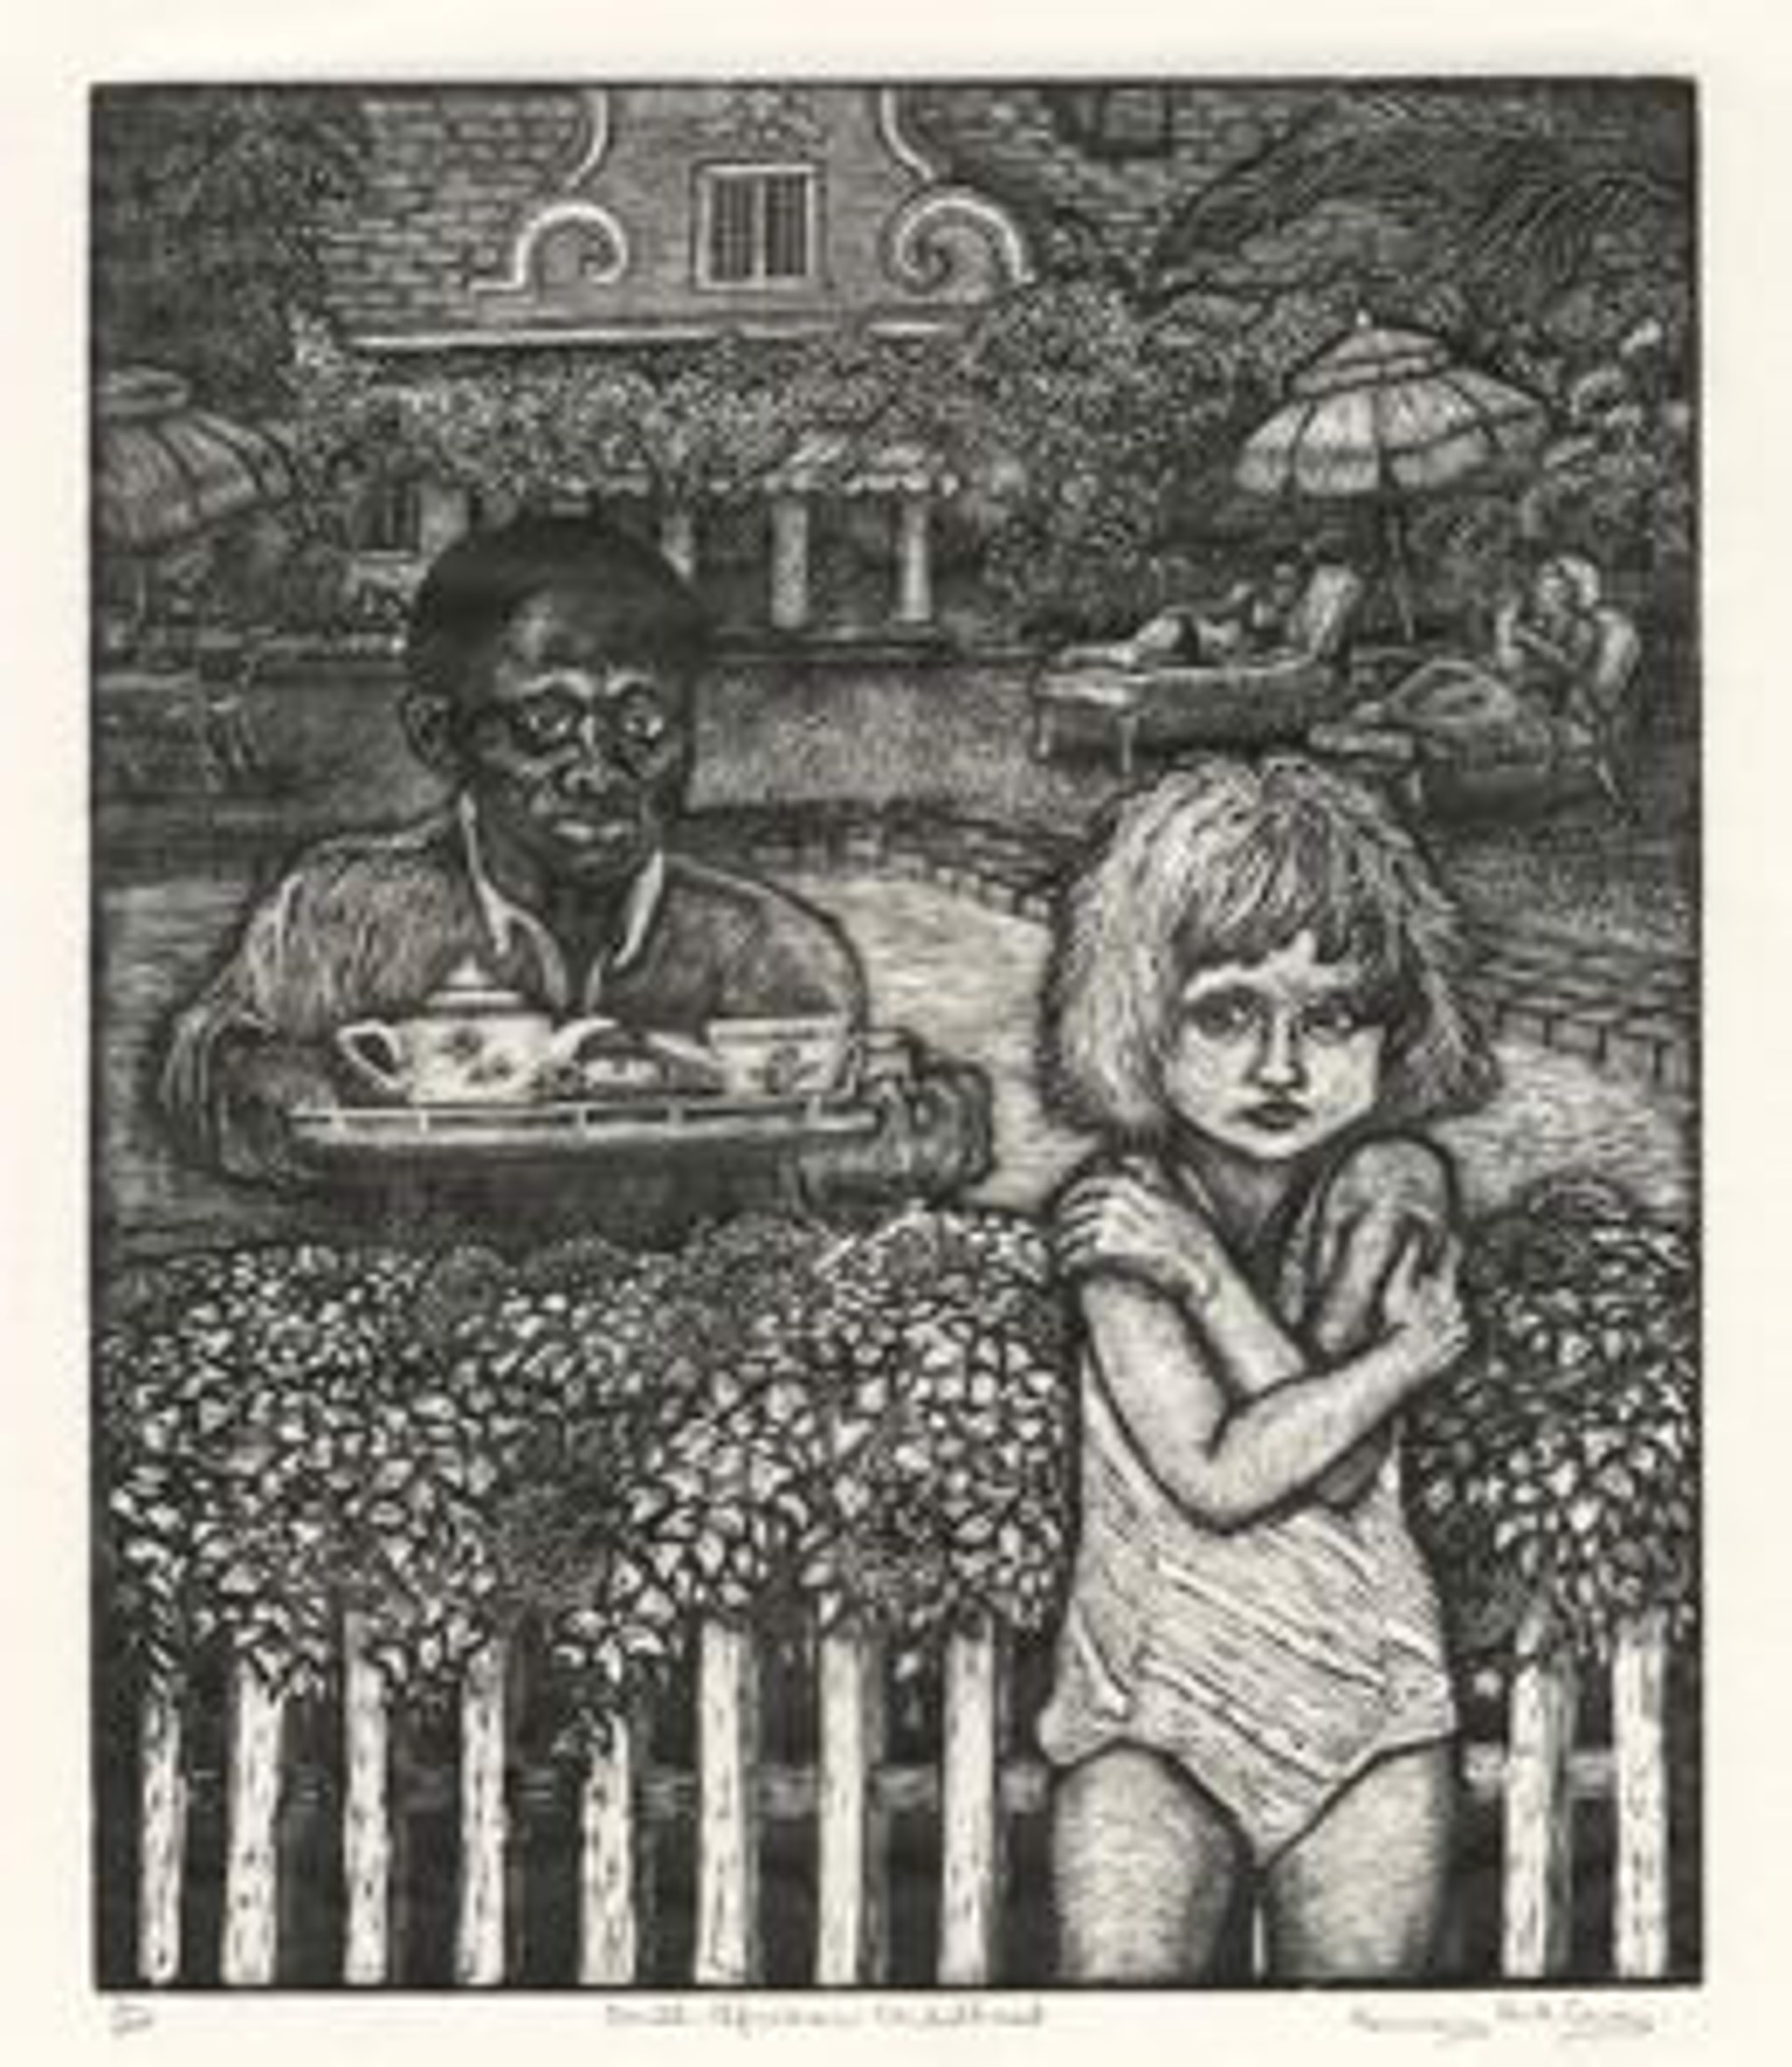 South African Childhood by Rosemary Feit Covey